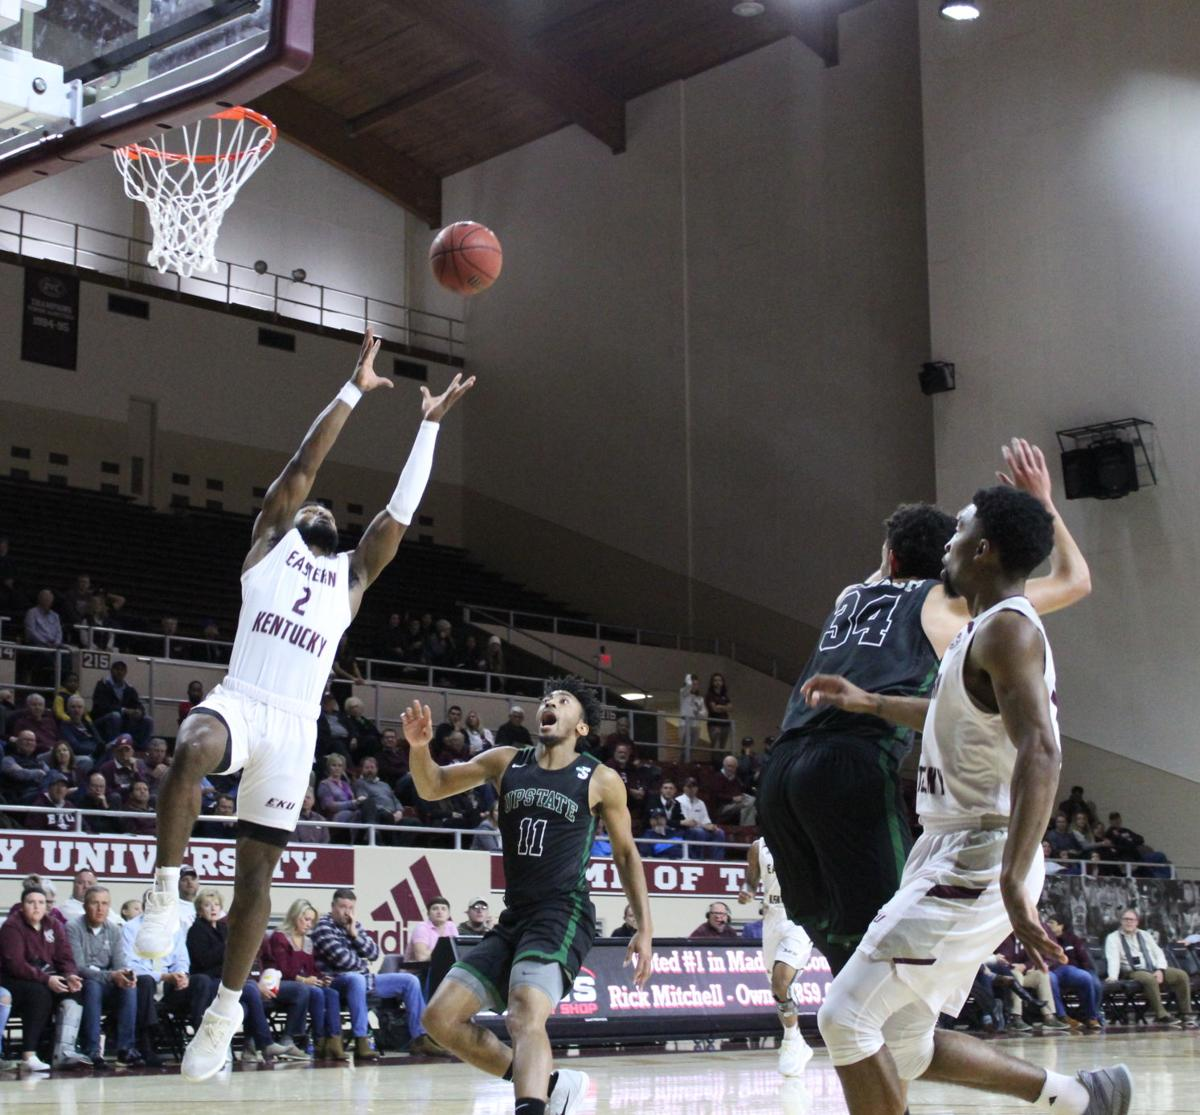 EKU men's basketball wins a close game against USC Upstate 79-77